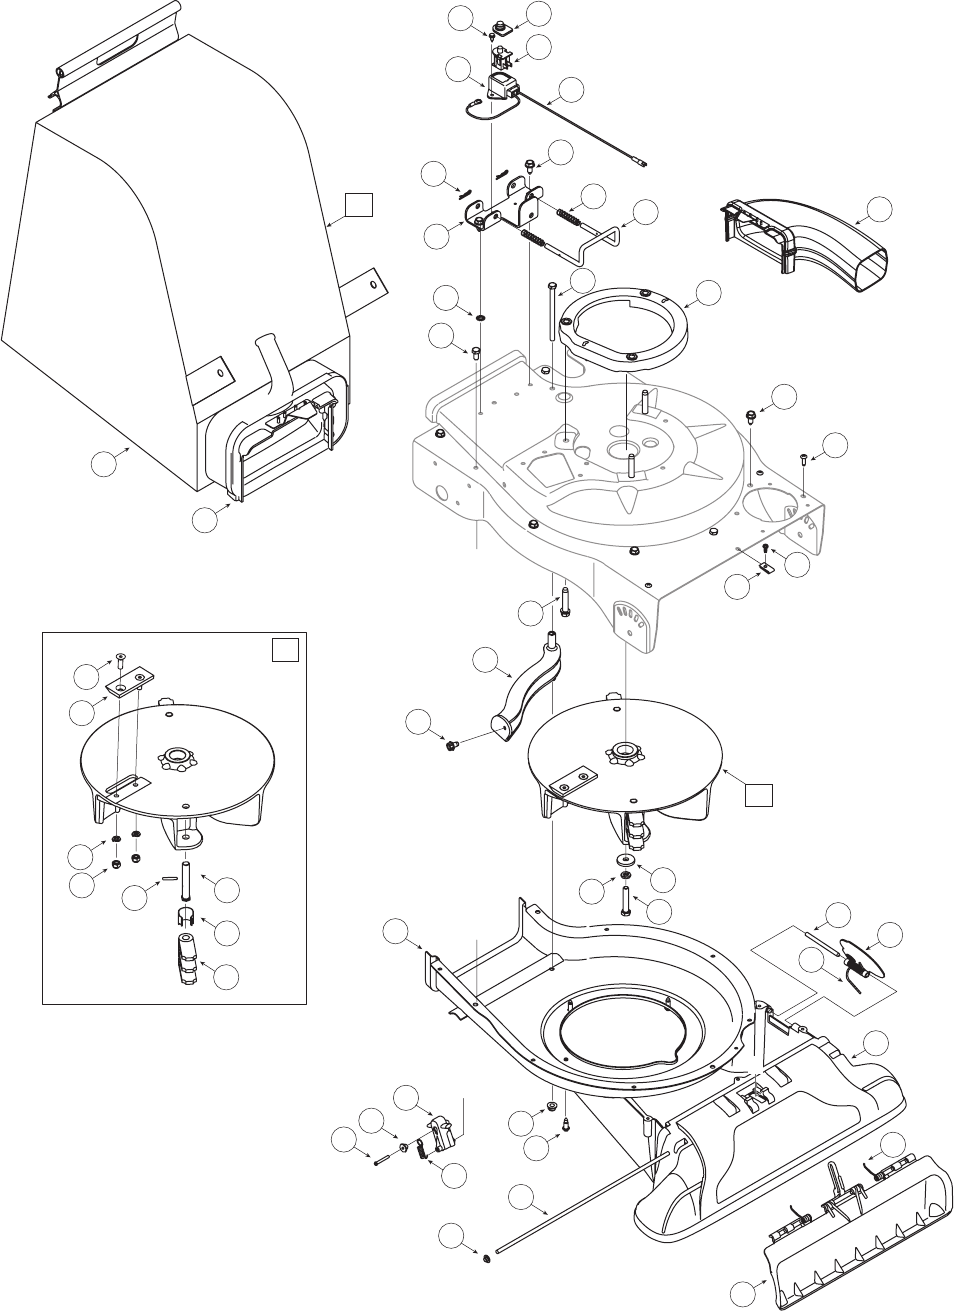 Page 24 of Craftsman Yard Vacuum 247.77099 User Guide